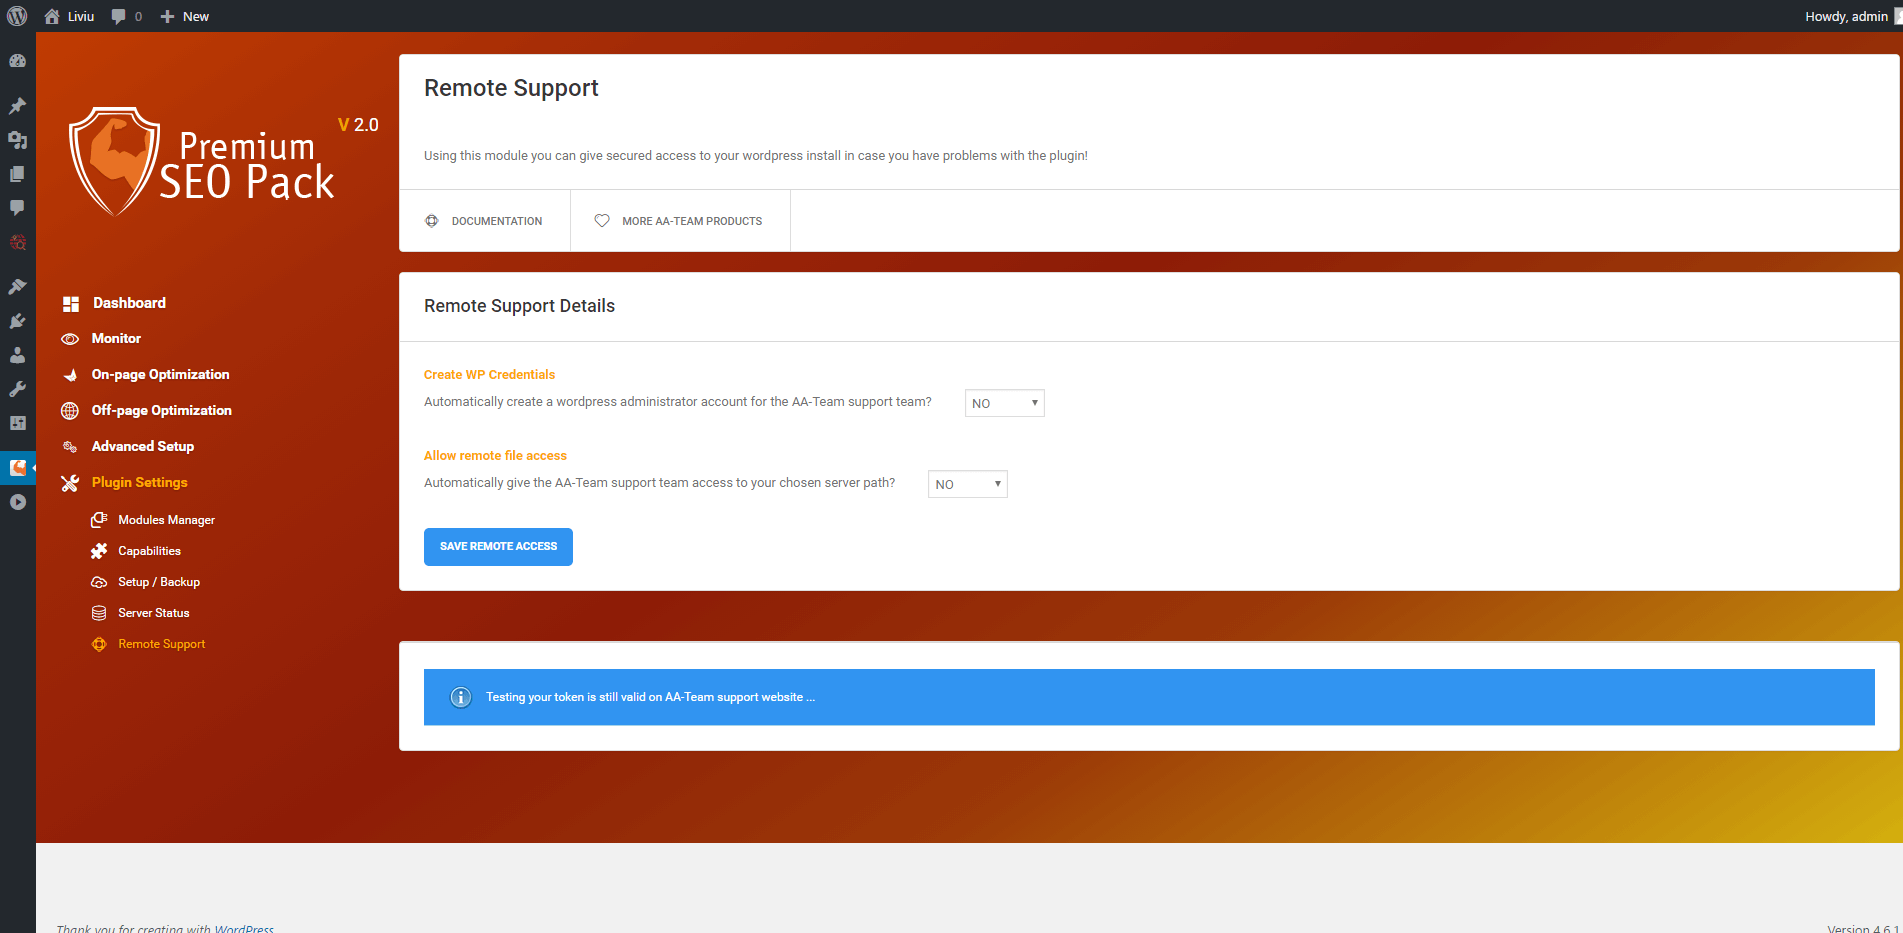 remoutsupport